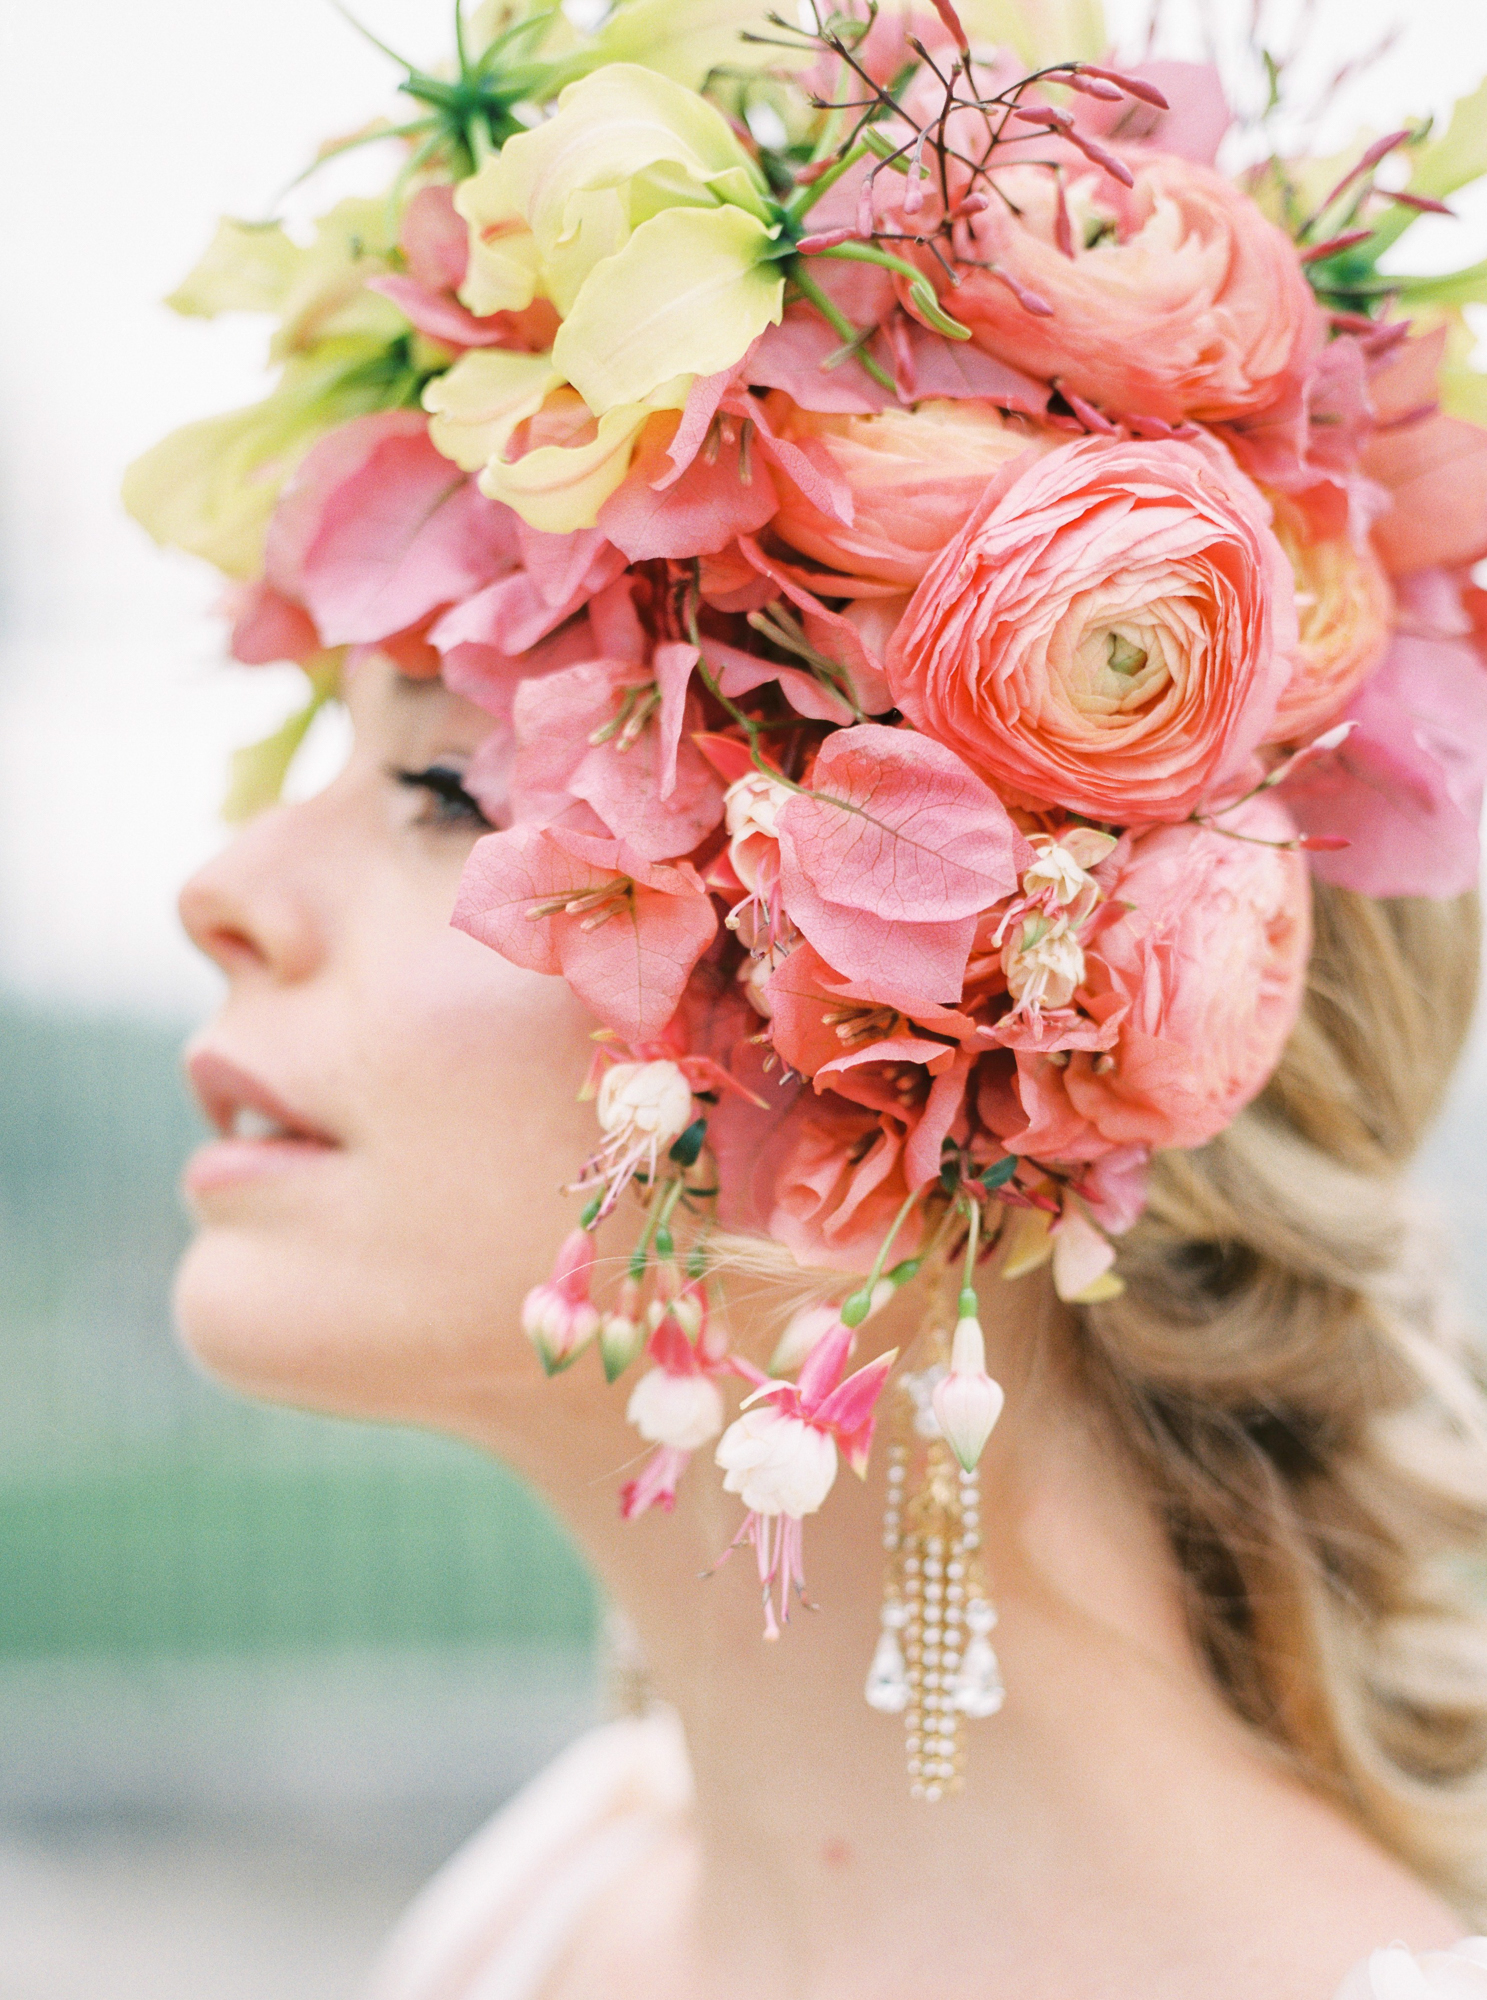 travellur_photoshoot__summer_in_versailles_wedding_flowers_bridal_luxe_shoot_floral_france_isibeal_studio_detail.jpg